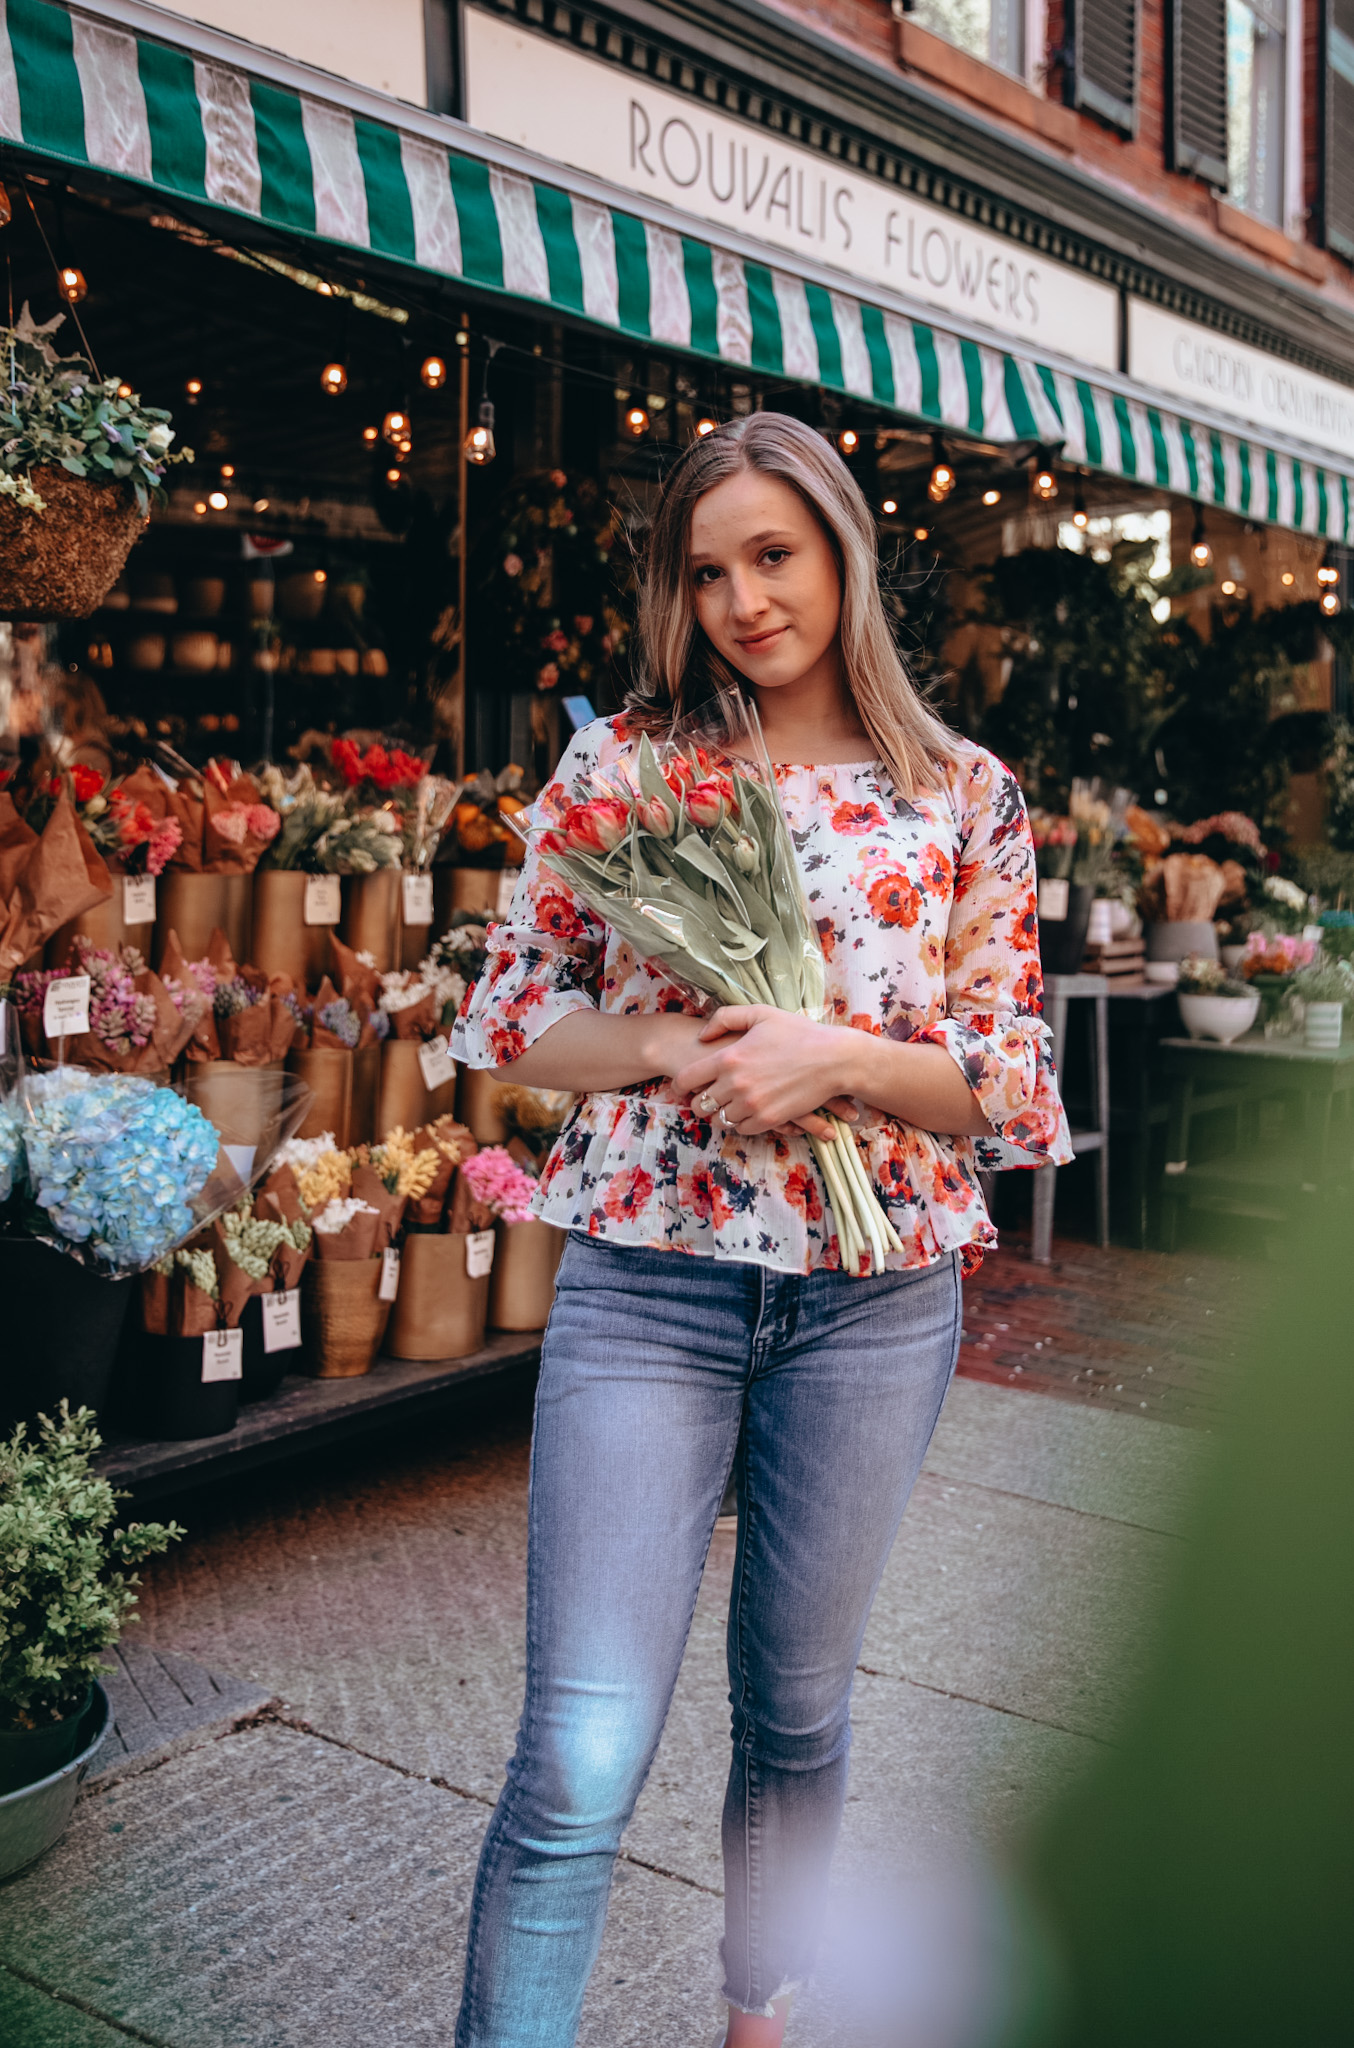 The most Instagrammable flower shop in Boston